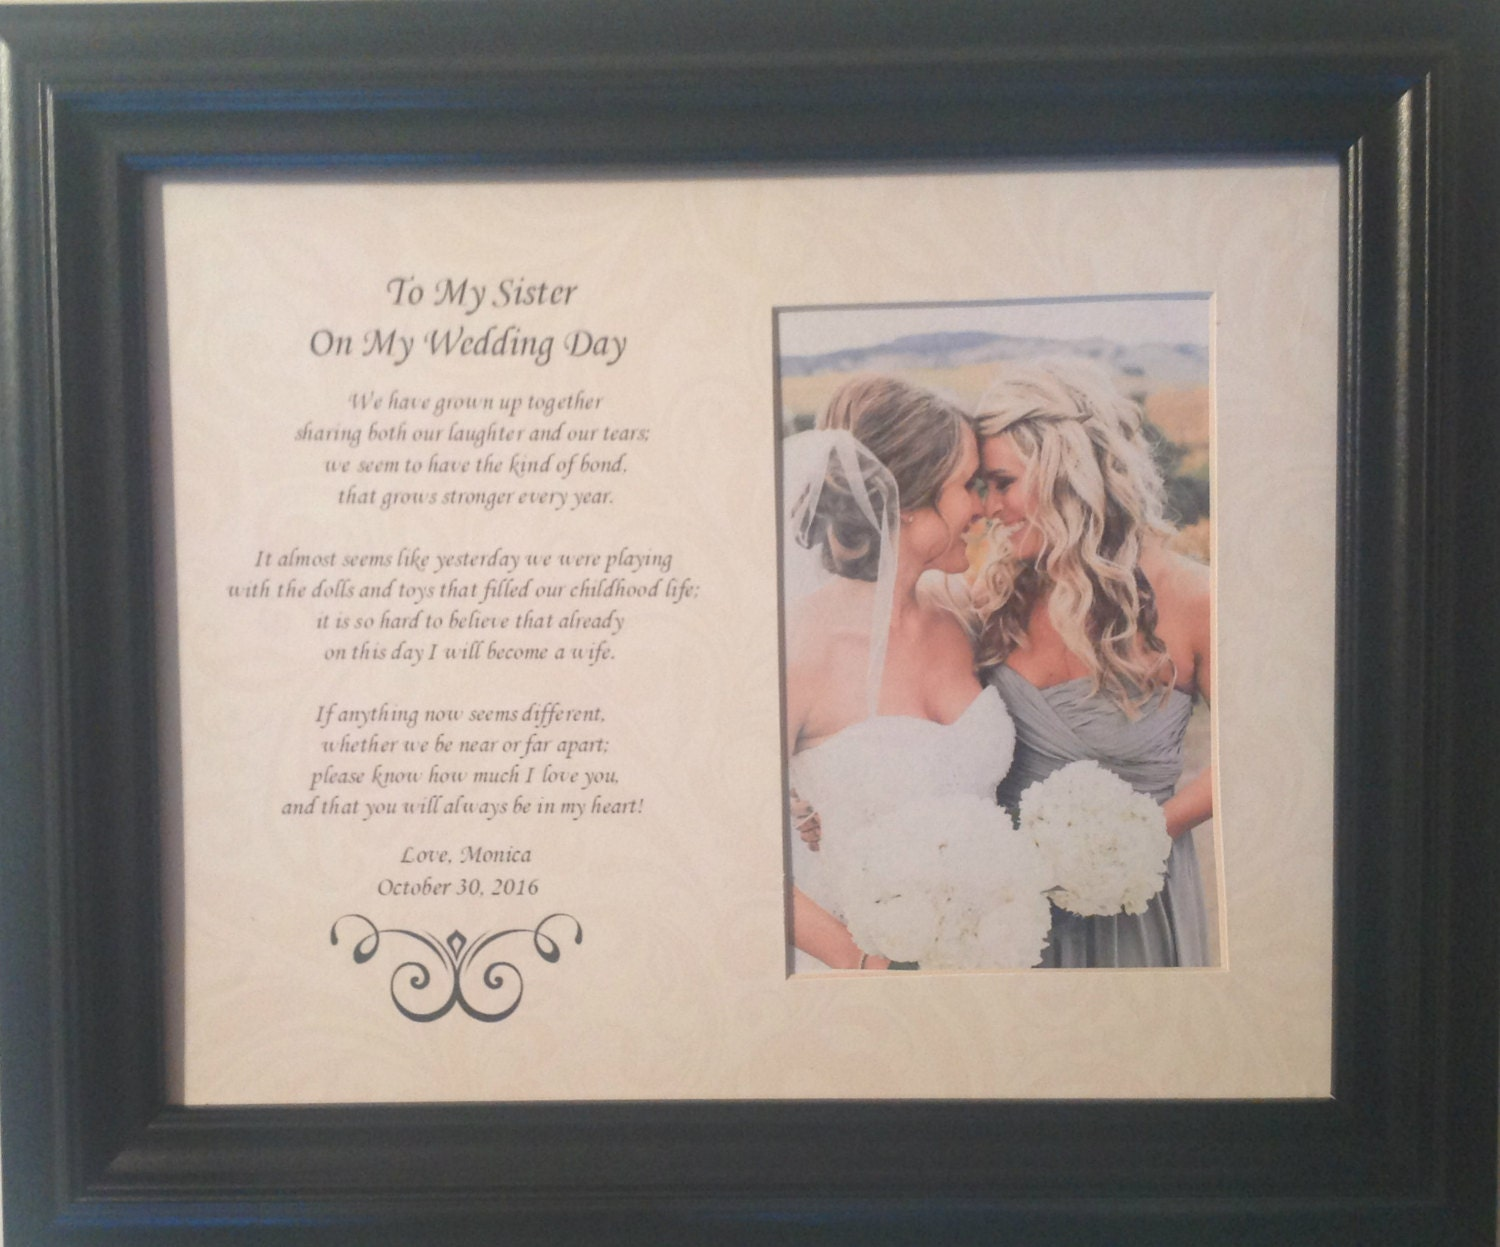 Wedding Gifts For Sisters: To My Sister On My Wedding Day Personalized Custom Gift Maid